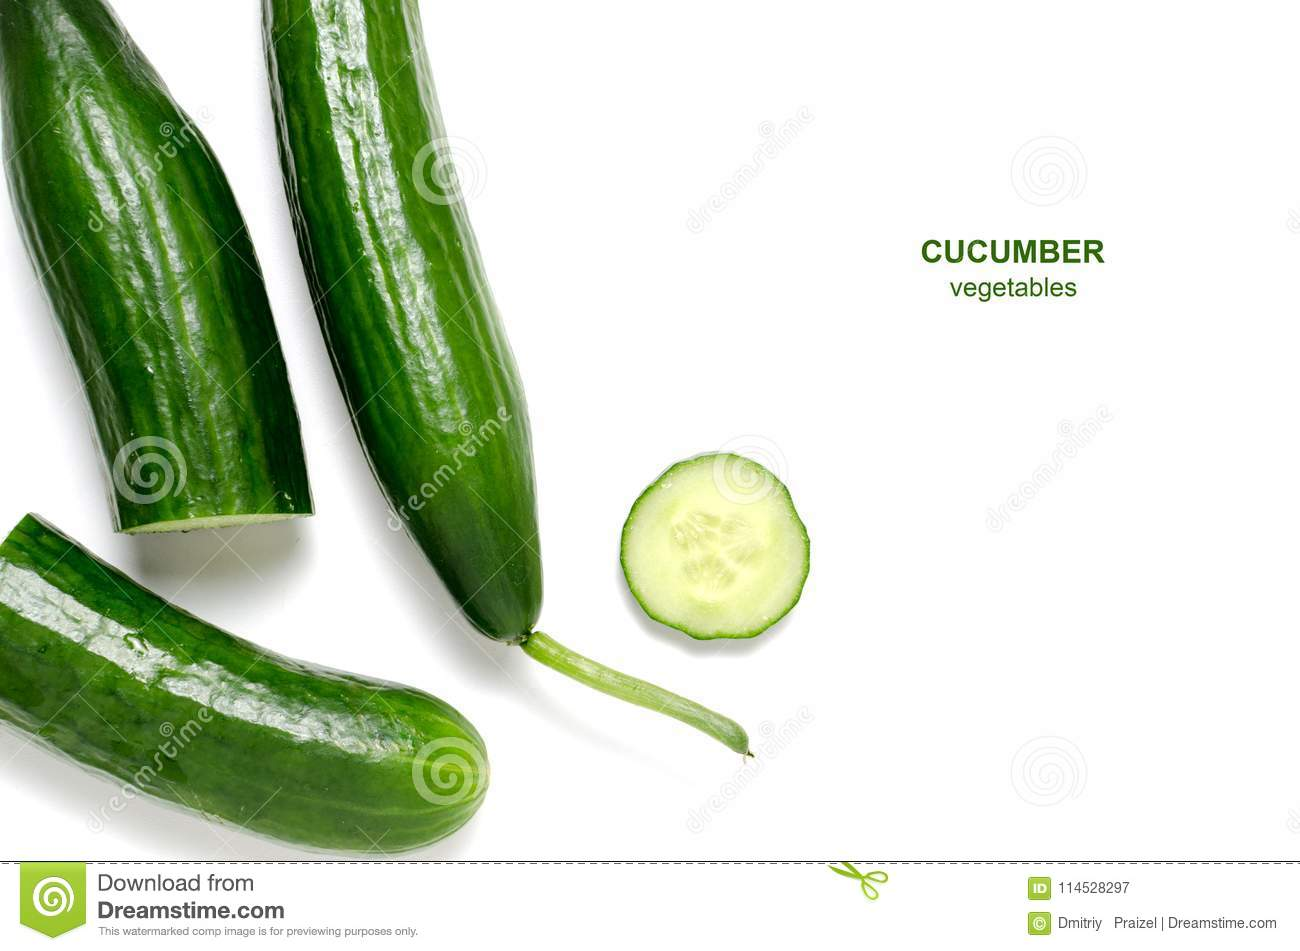 What are the vitamins in cucumbers and tomatoes? 57